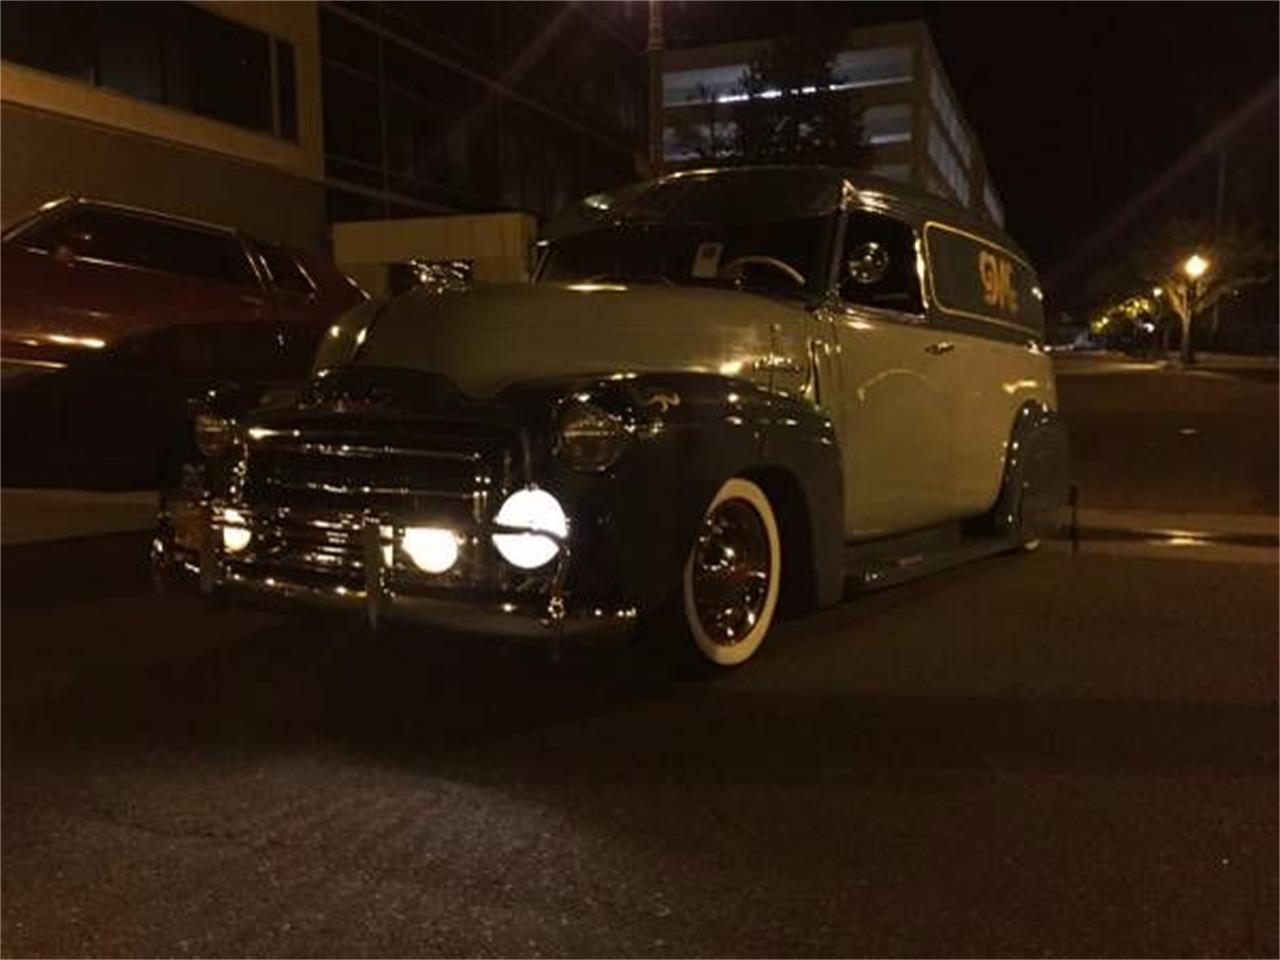 1949 Gmc Panel Truck For Sale Cc 1122116 Dodge Van Large Picture Of Classic Located In Cadillac Michigan O1tw